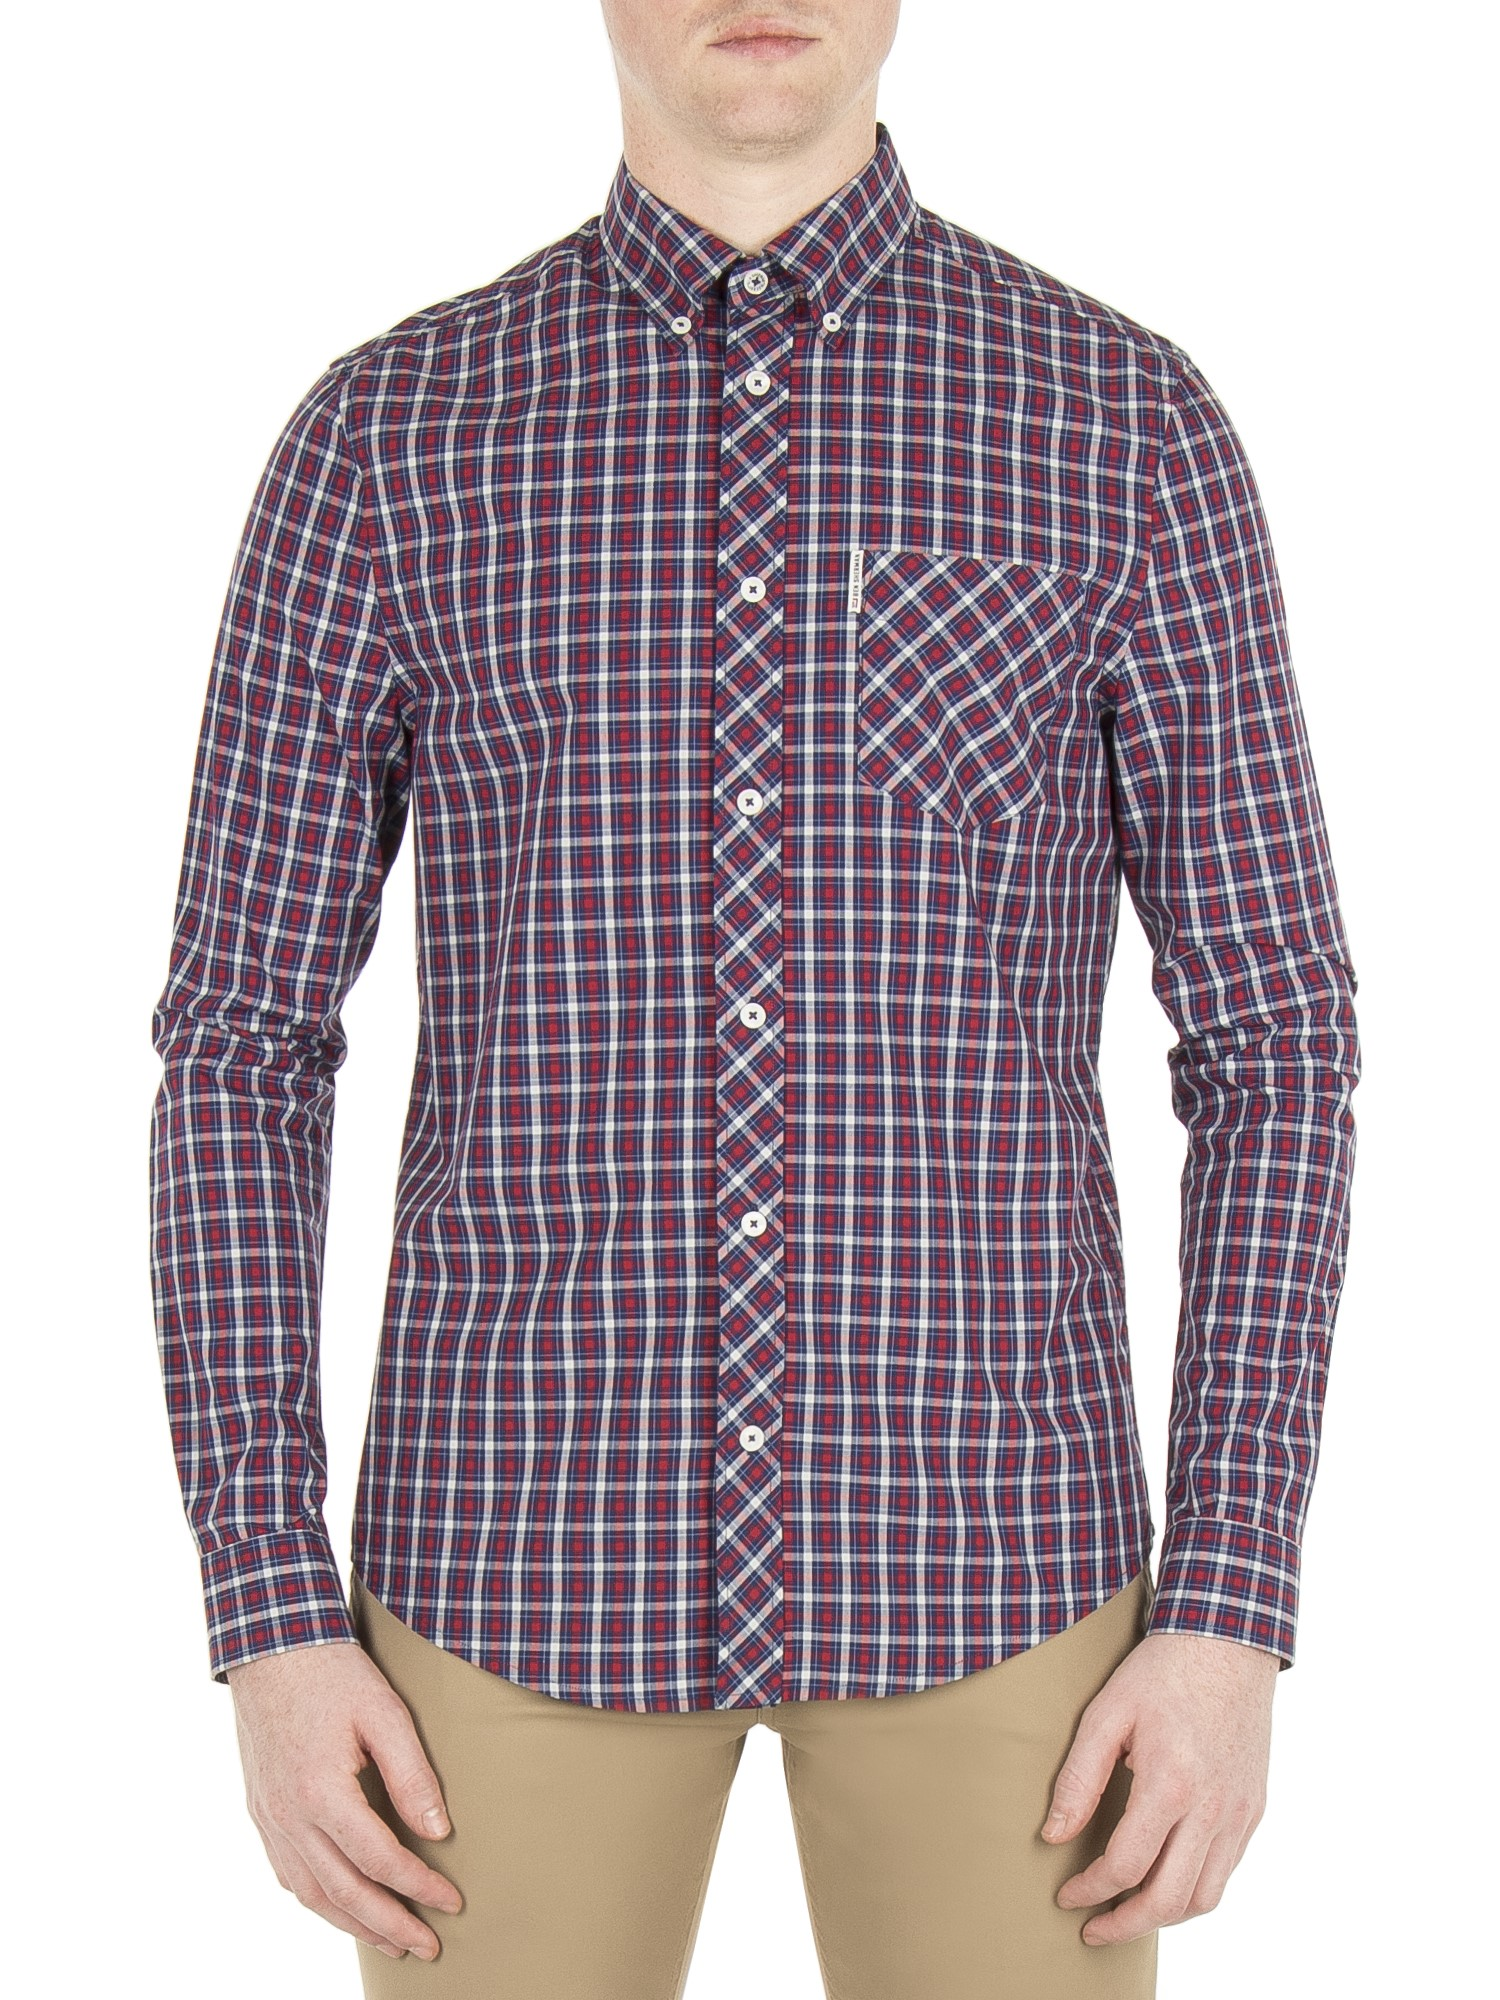 Ben Sherman Red Dahlia Long Sleeve House Check Shirt Regular Fit (Mod Fit)